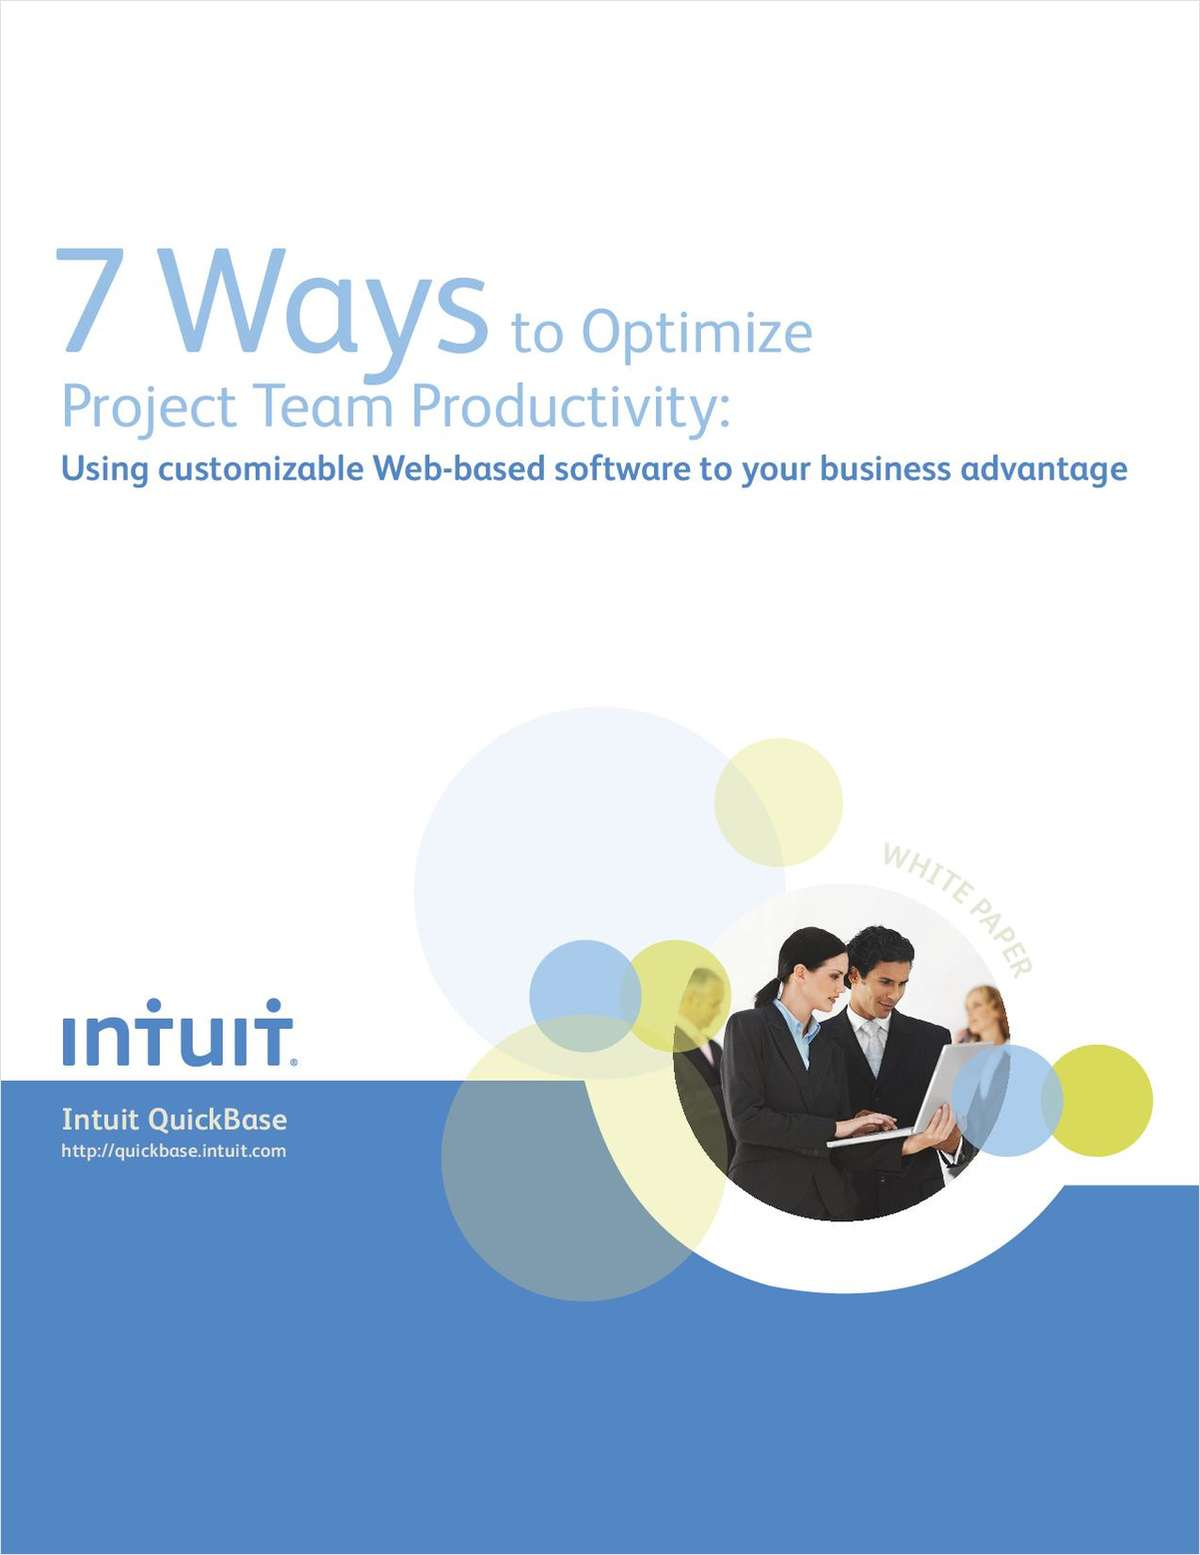 7 Ways to Optimize Project Team Productivity: Using Customizable Web-based Project Management Software to Your Business Advantage